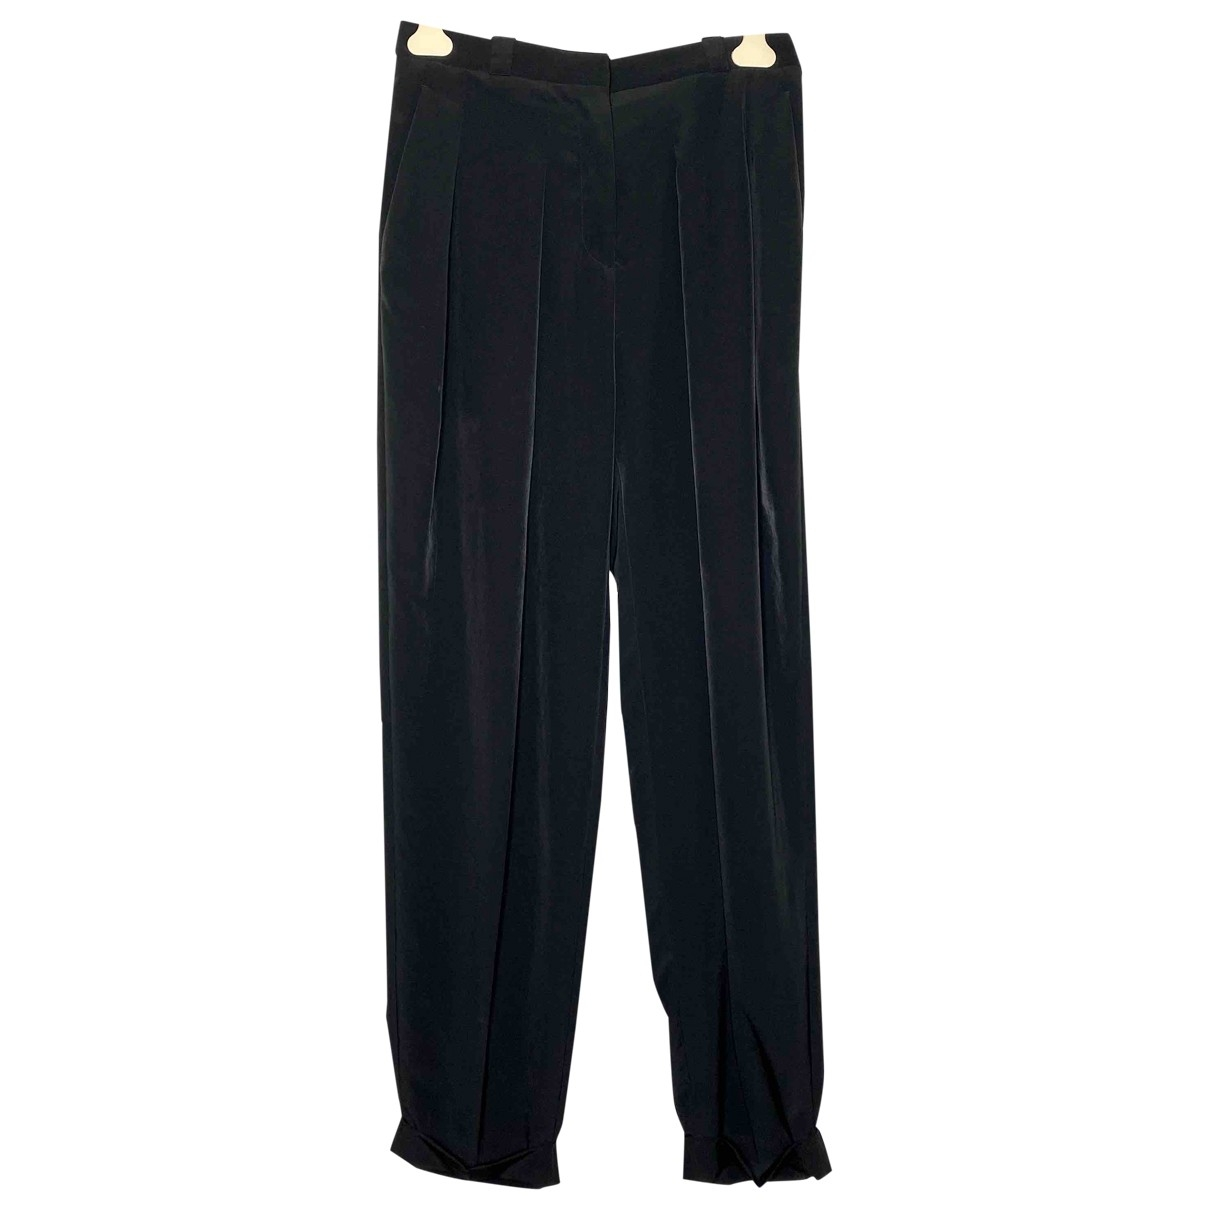 Maison Martin Margiela \N Black Trousers for Women 46 IT